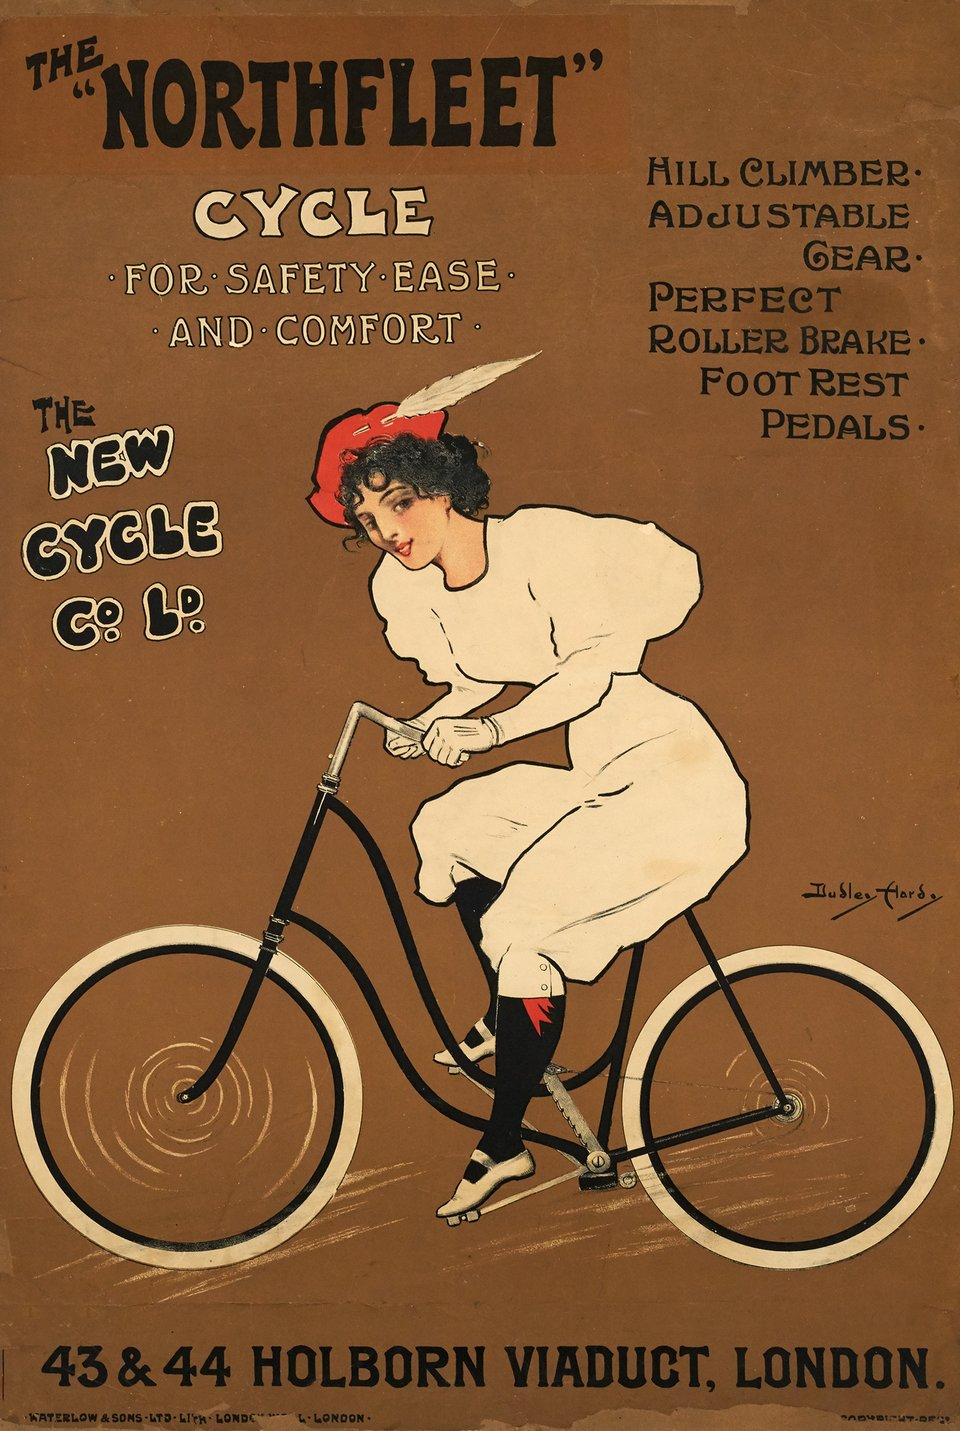 The Northfleet Cycle – Vintage poster – Dudley HARDY – 1895